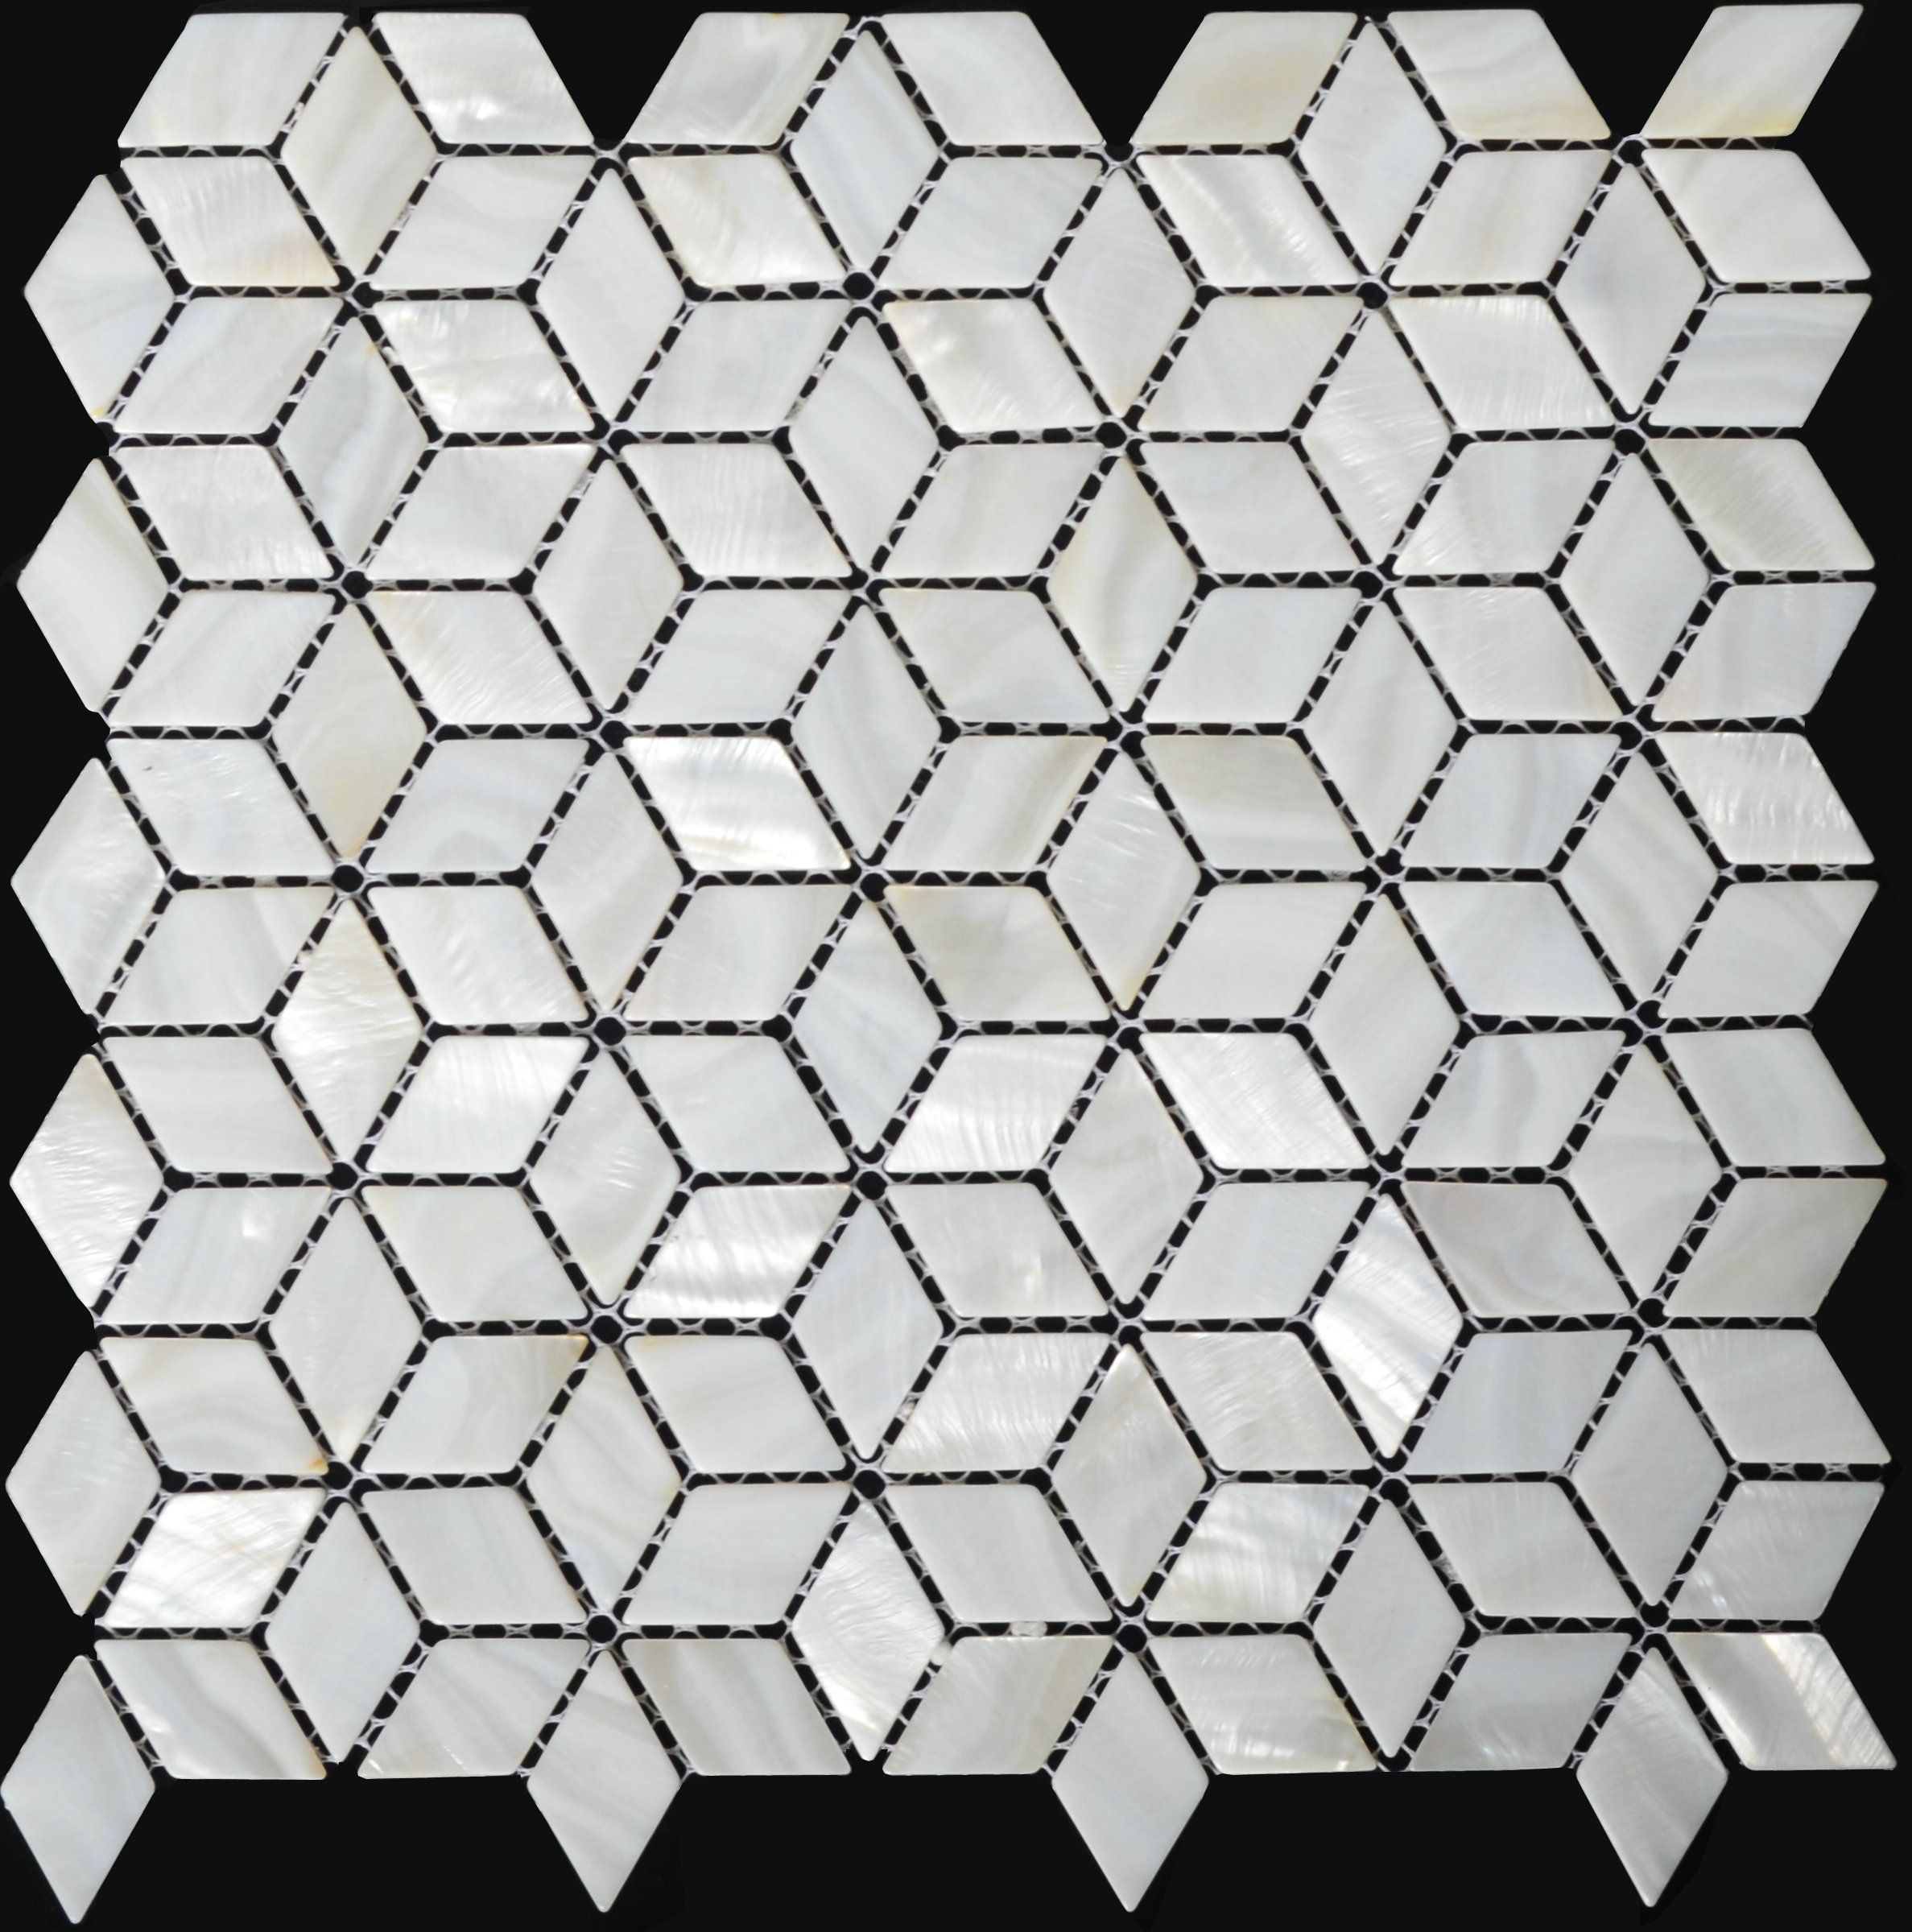 mother of pearl mosaic,mother of pearl mosaic tile,mother of pearl ...